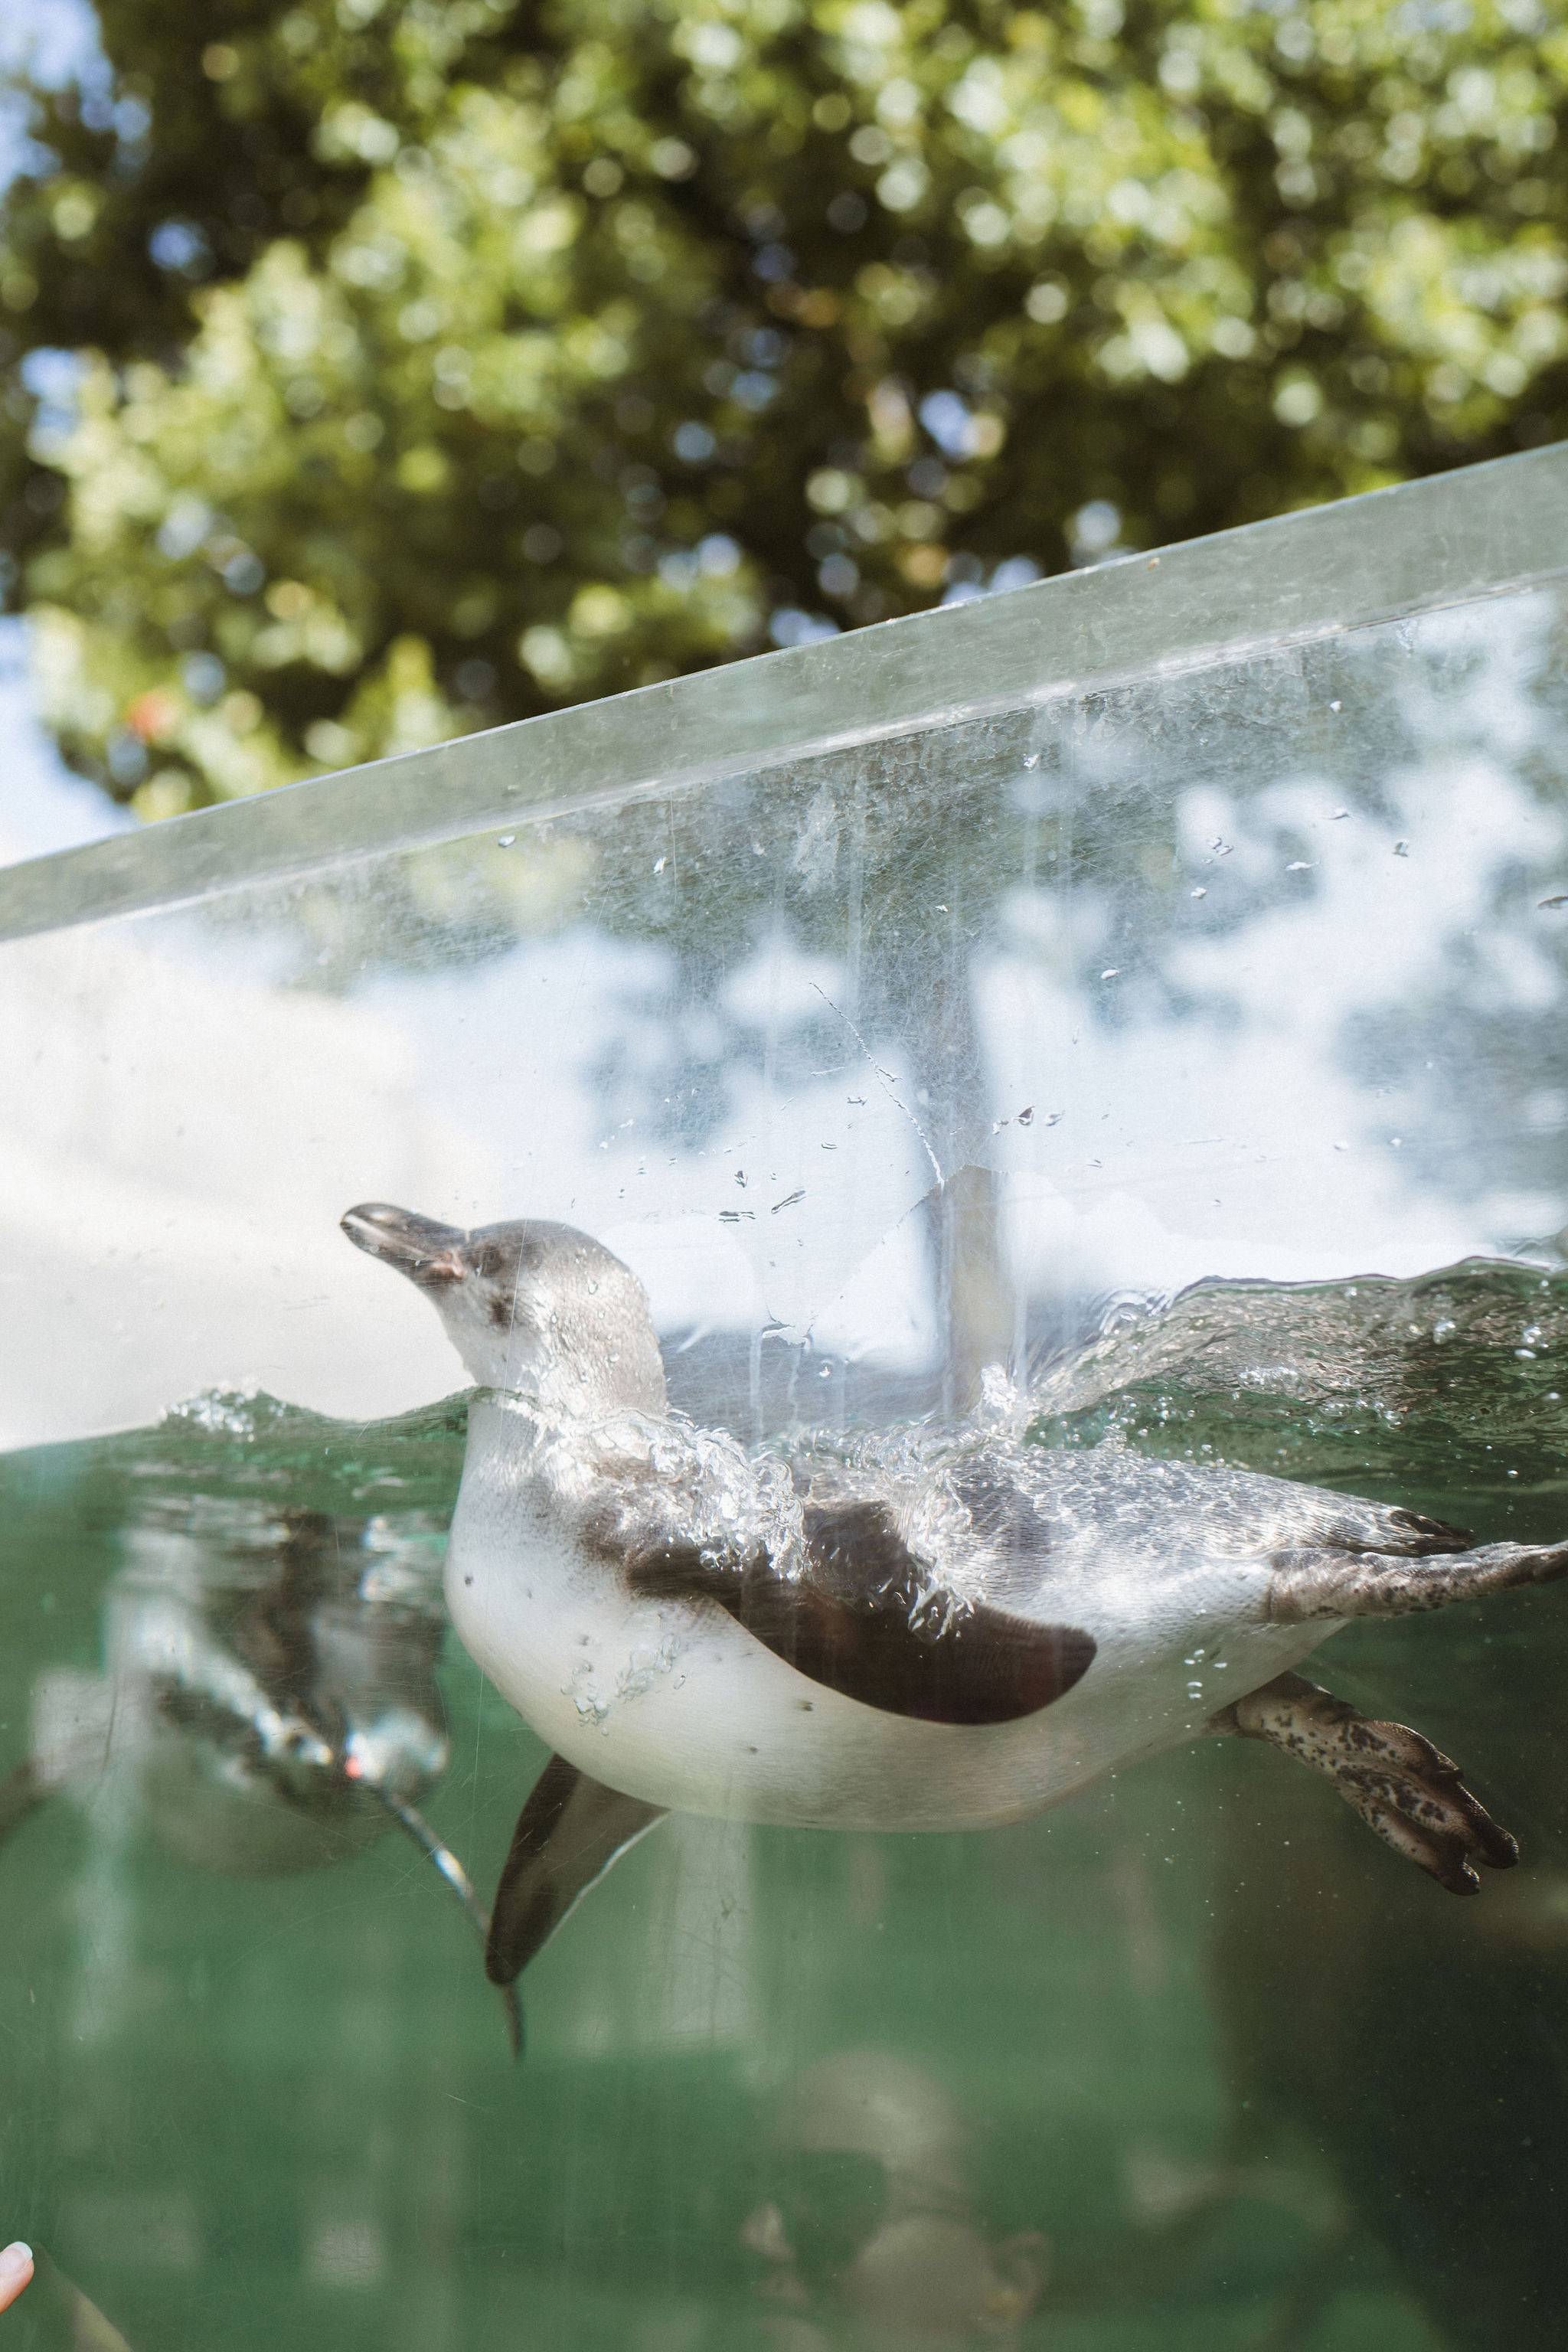 Paris zoo penguins photographer iheartparis.jpg